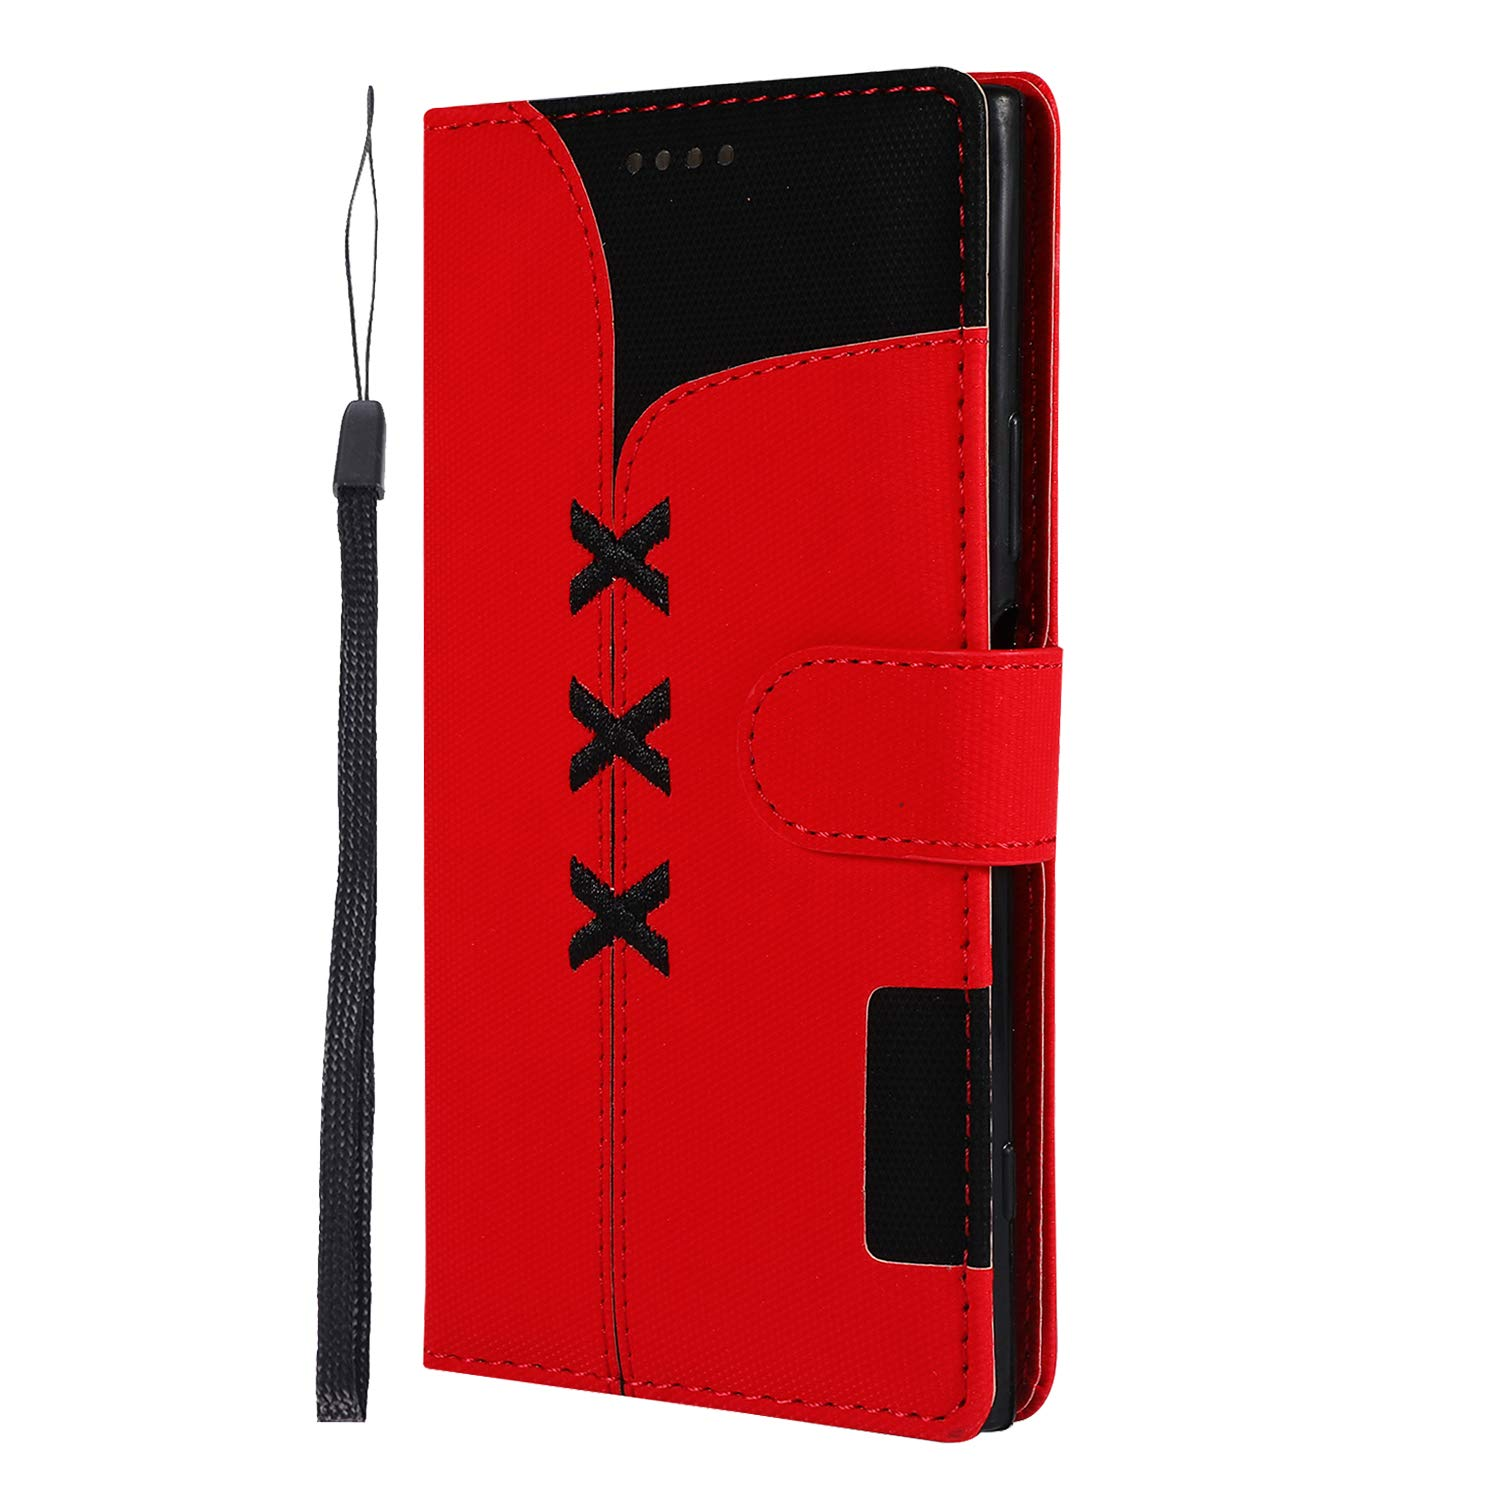 Sony Xperia XZ1 Case Lomogo Leather Wallet Case with Kickstand Card Holder Shockproof Flip Case Cover for Sony Xperia XZ1 LOGHU040405 Black